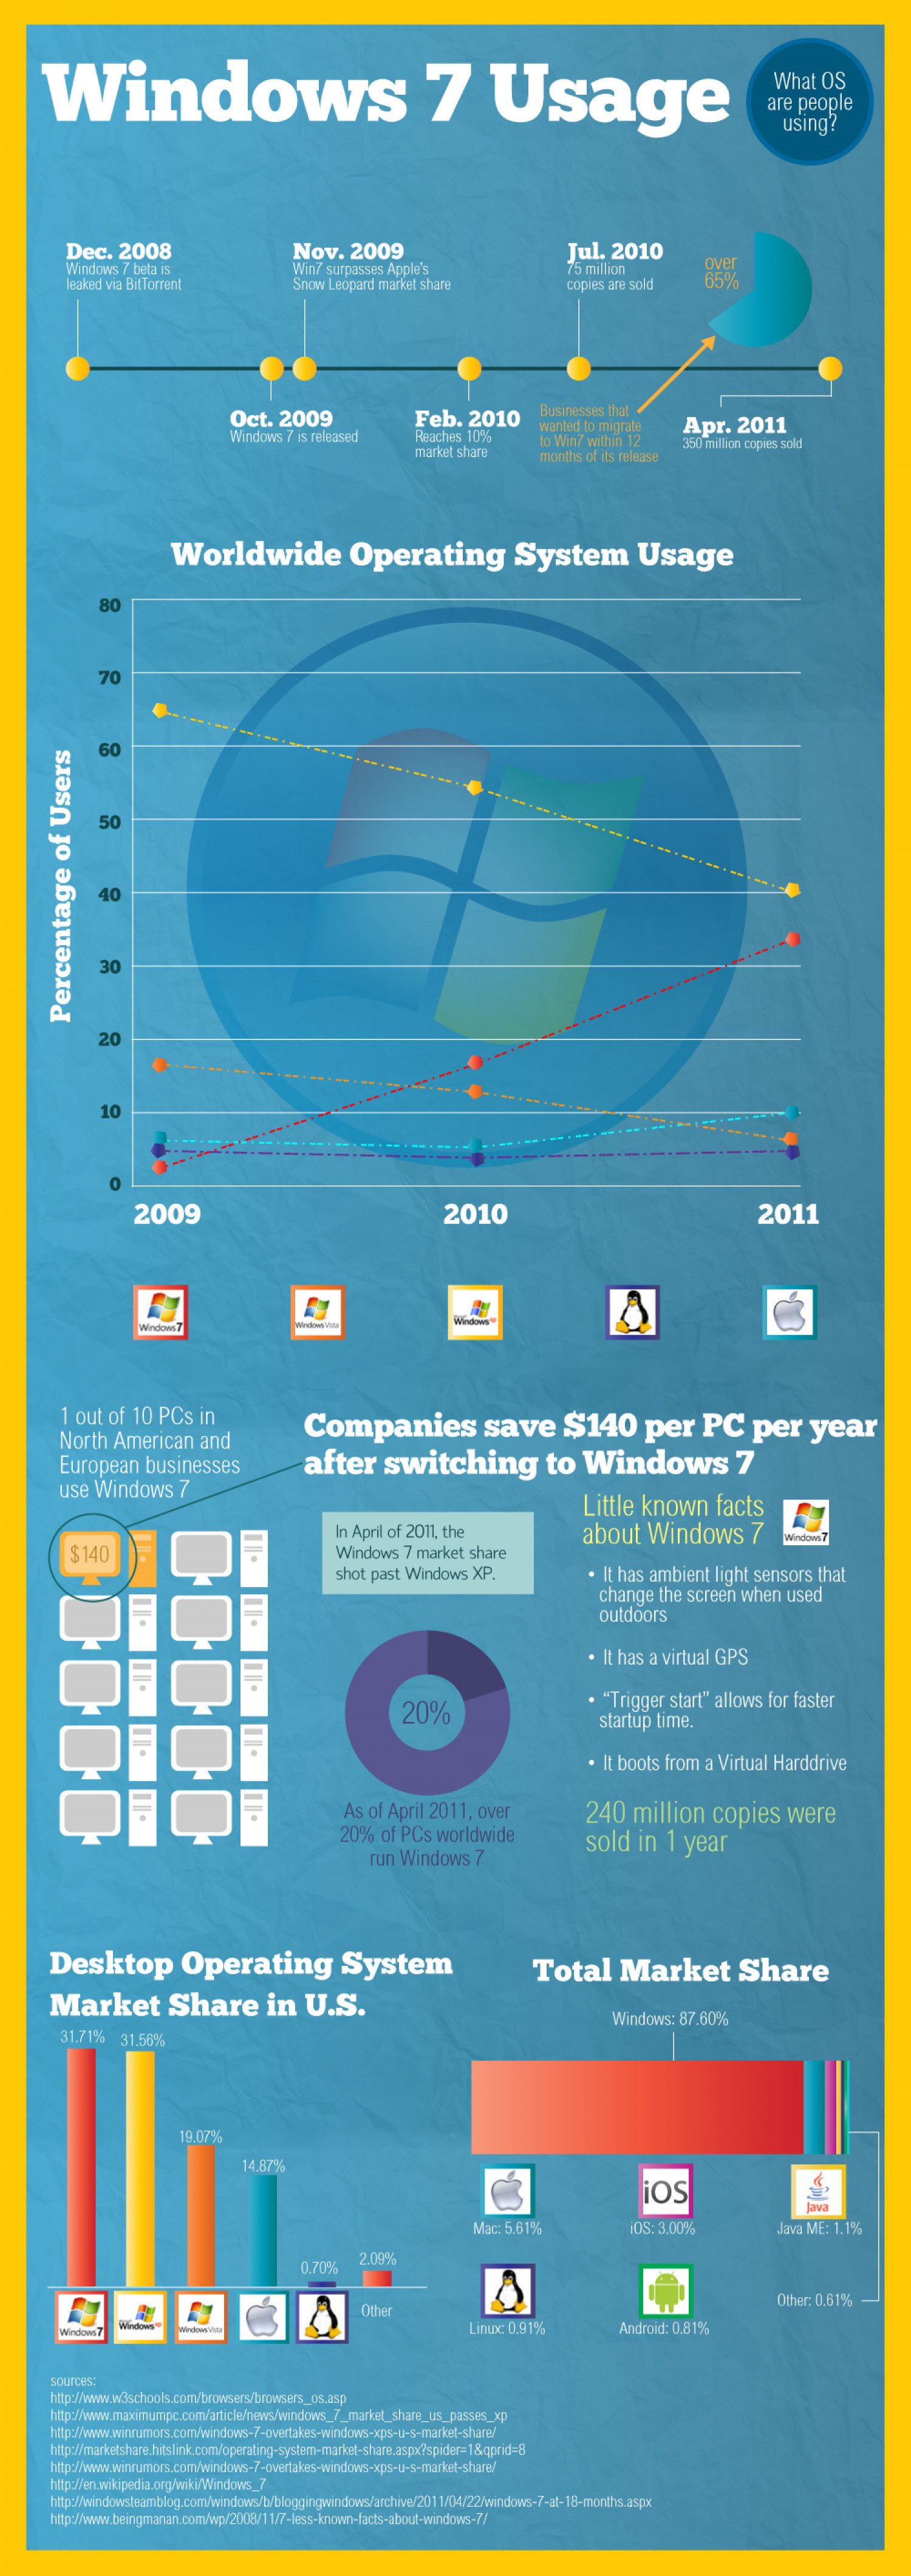 Just How Widespread is Windows 7? Infographic